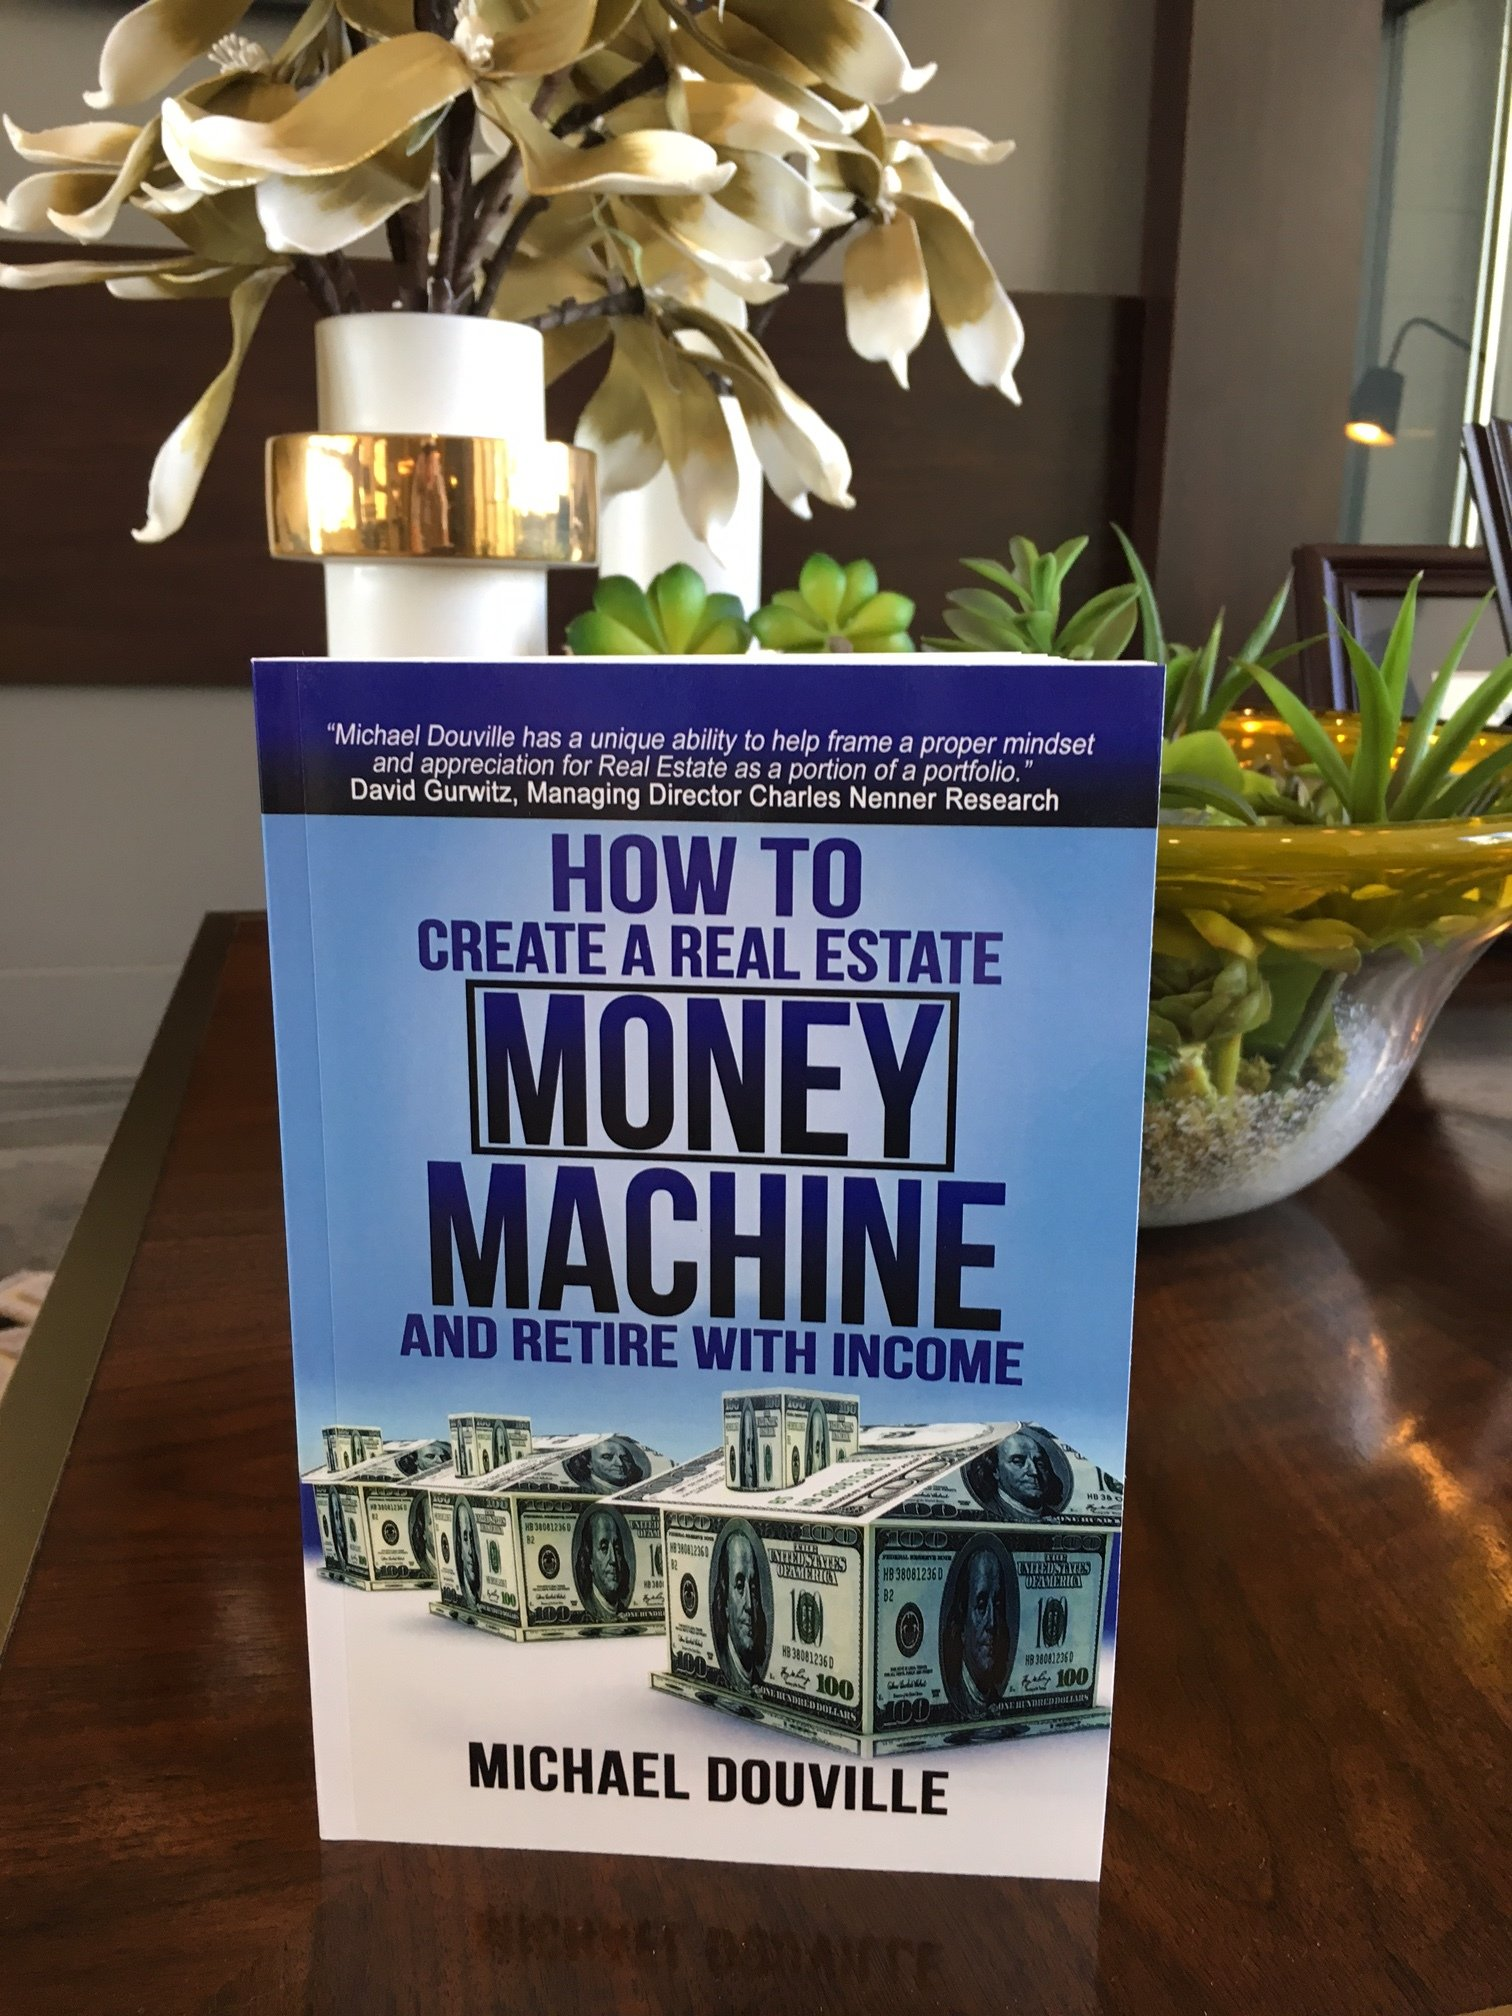 Paperback Book How To Create A Real Estate Money Machine And Retire With Income 00001